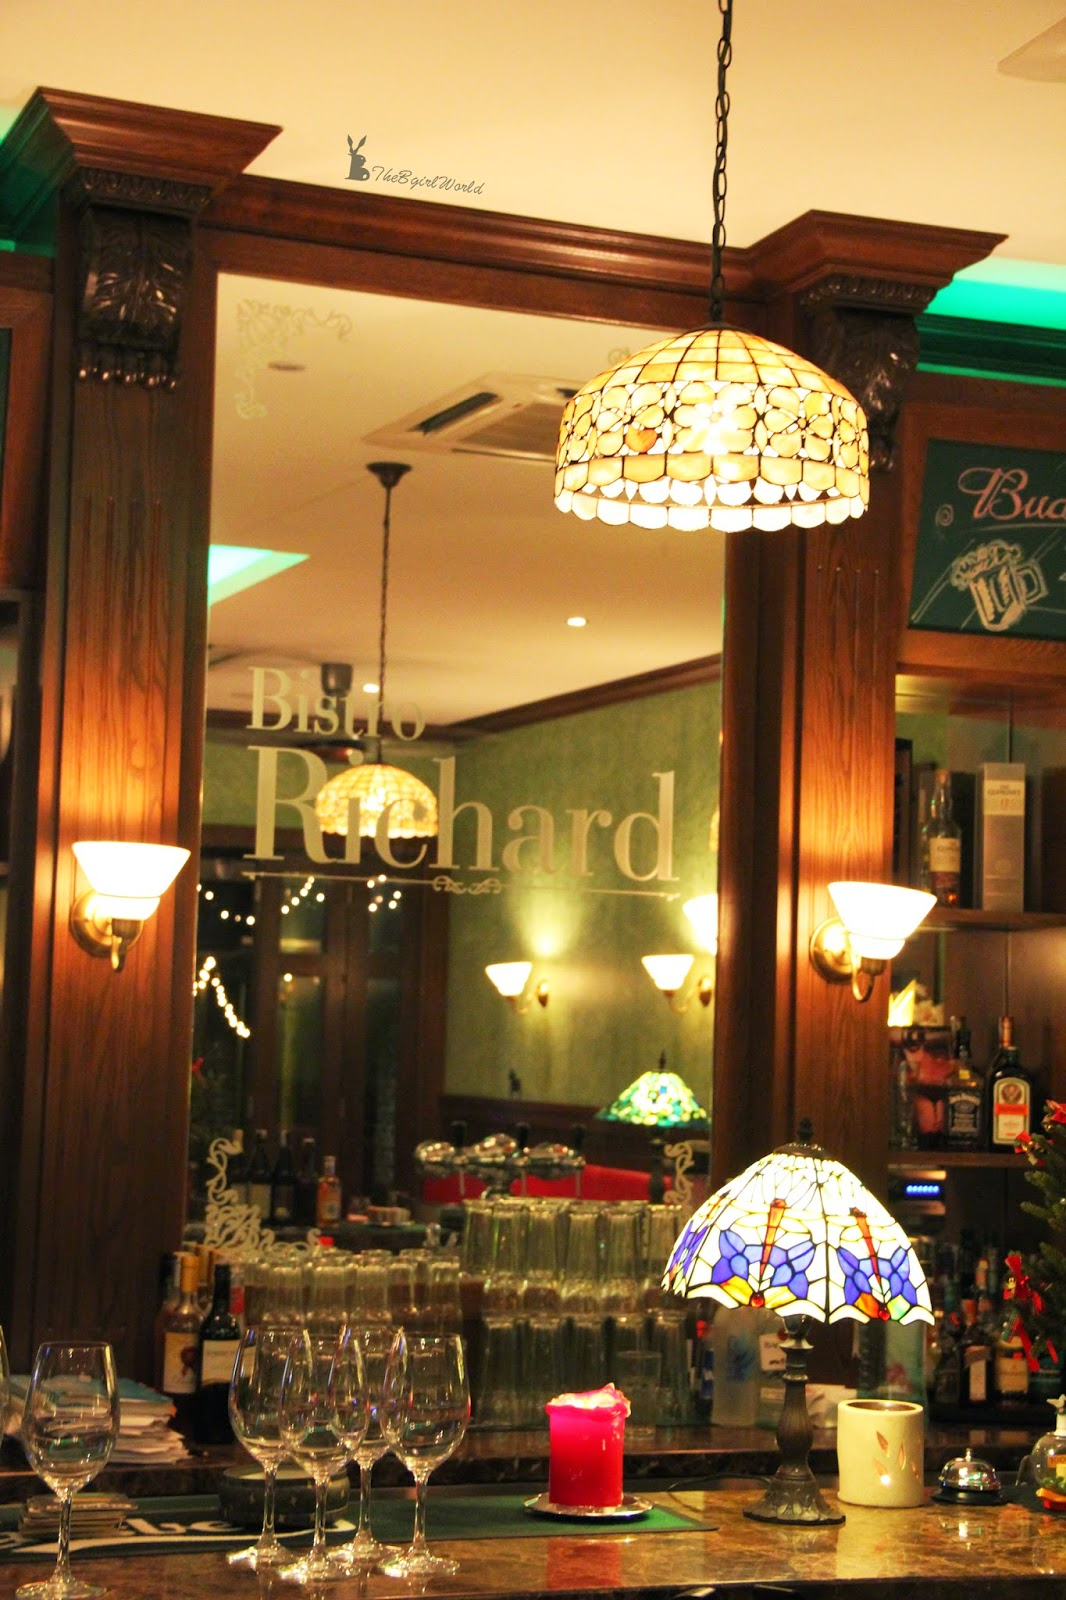 Food review: bistro richard at sentul klpac ~ the b girl world